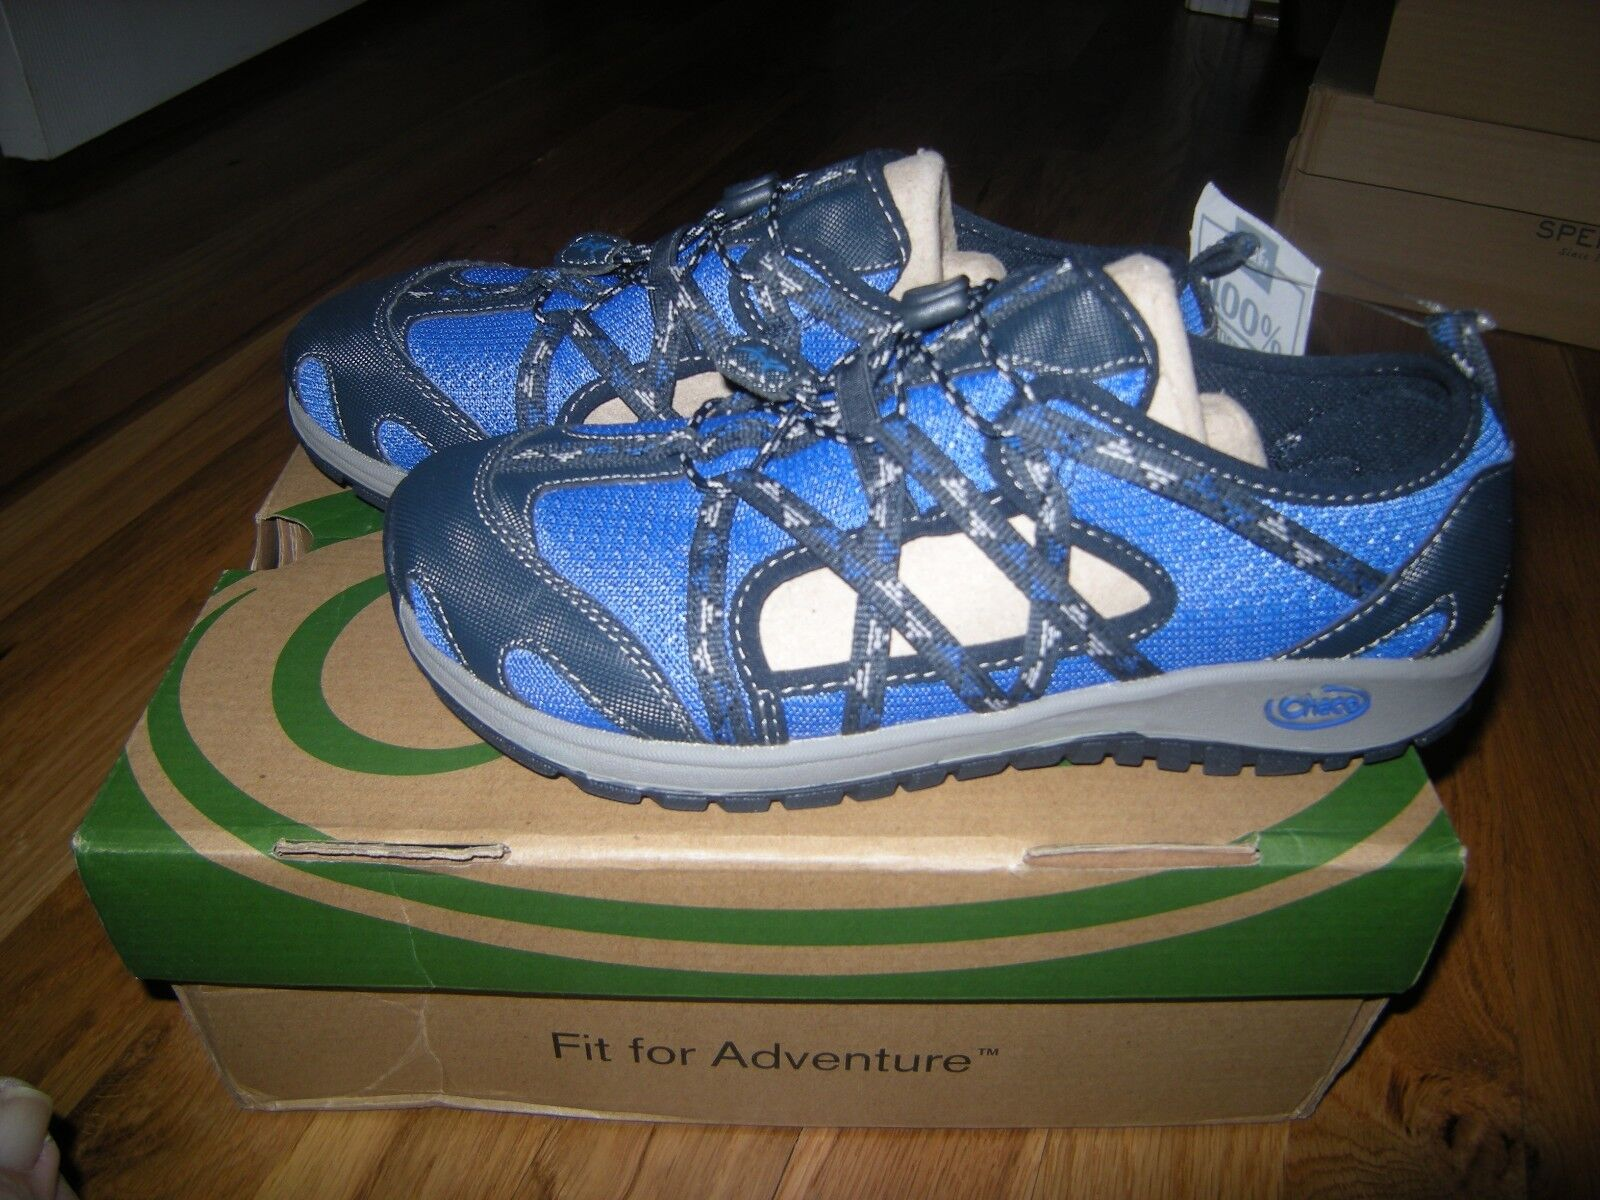 New  Boys Toddler Blue Chaco Outcross Sandals, Size 4